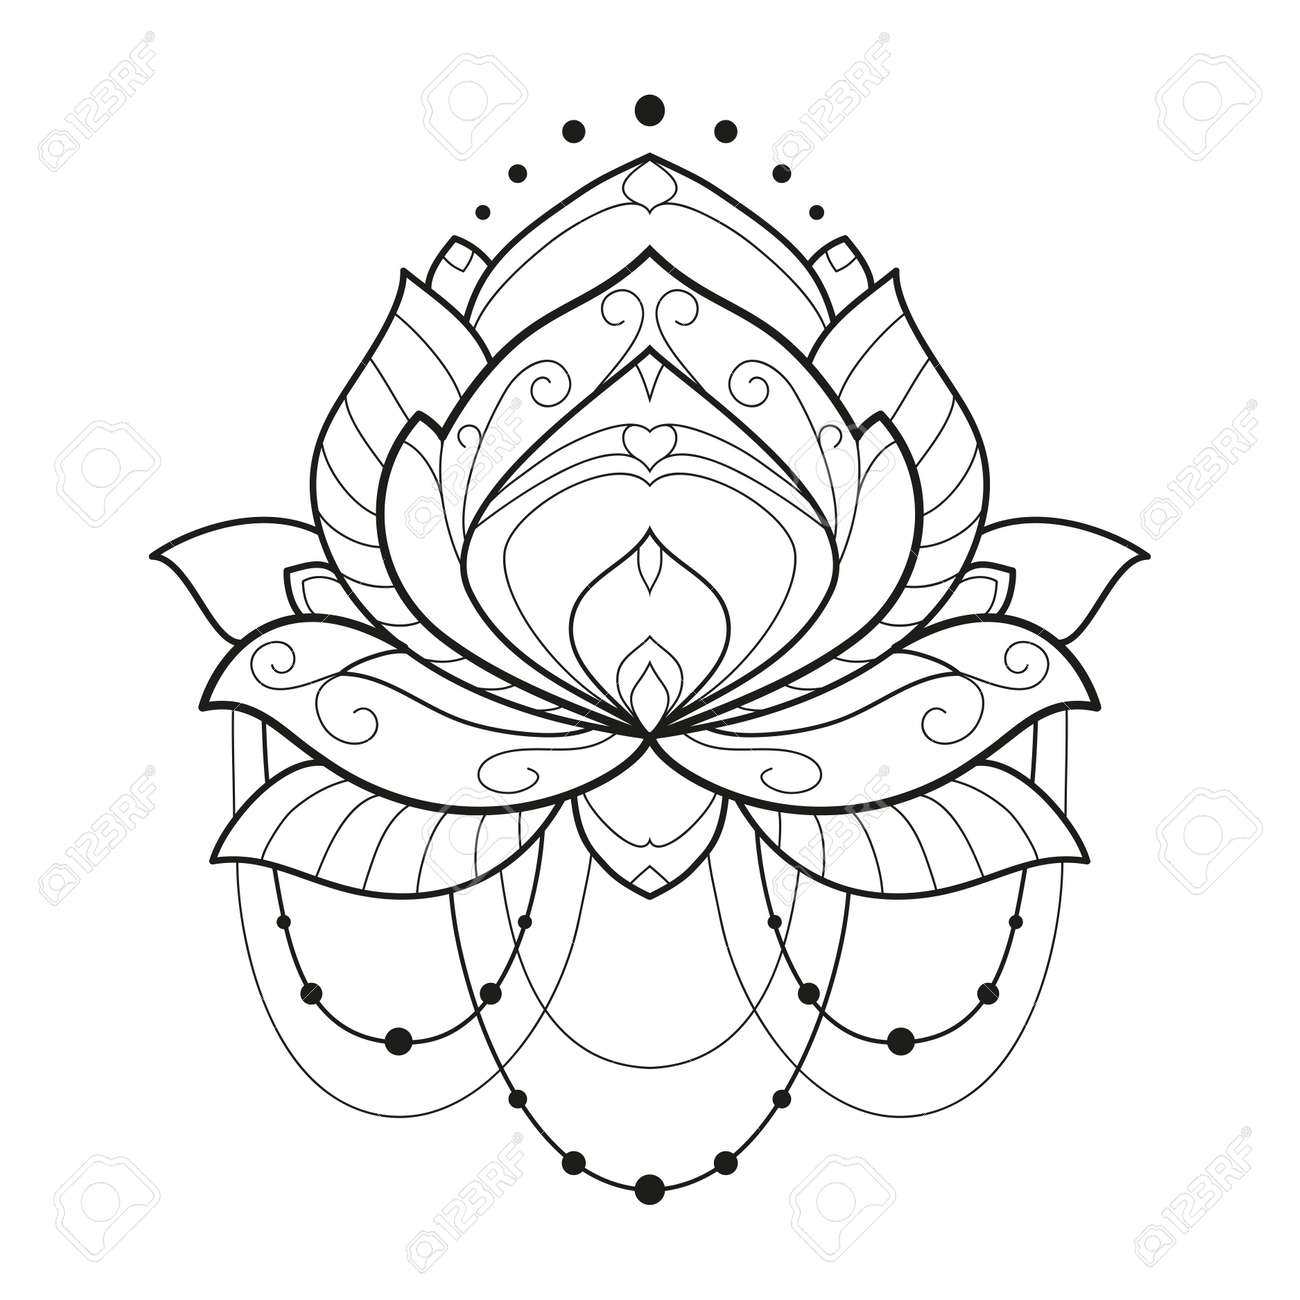 Lotus Flower Monochrome Geometrical Vector Illustration Is Isolated